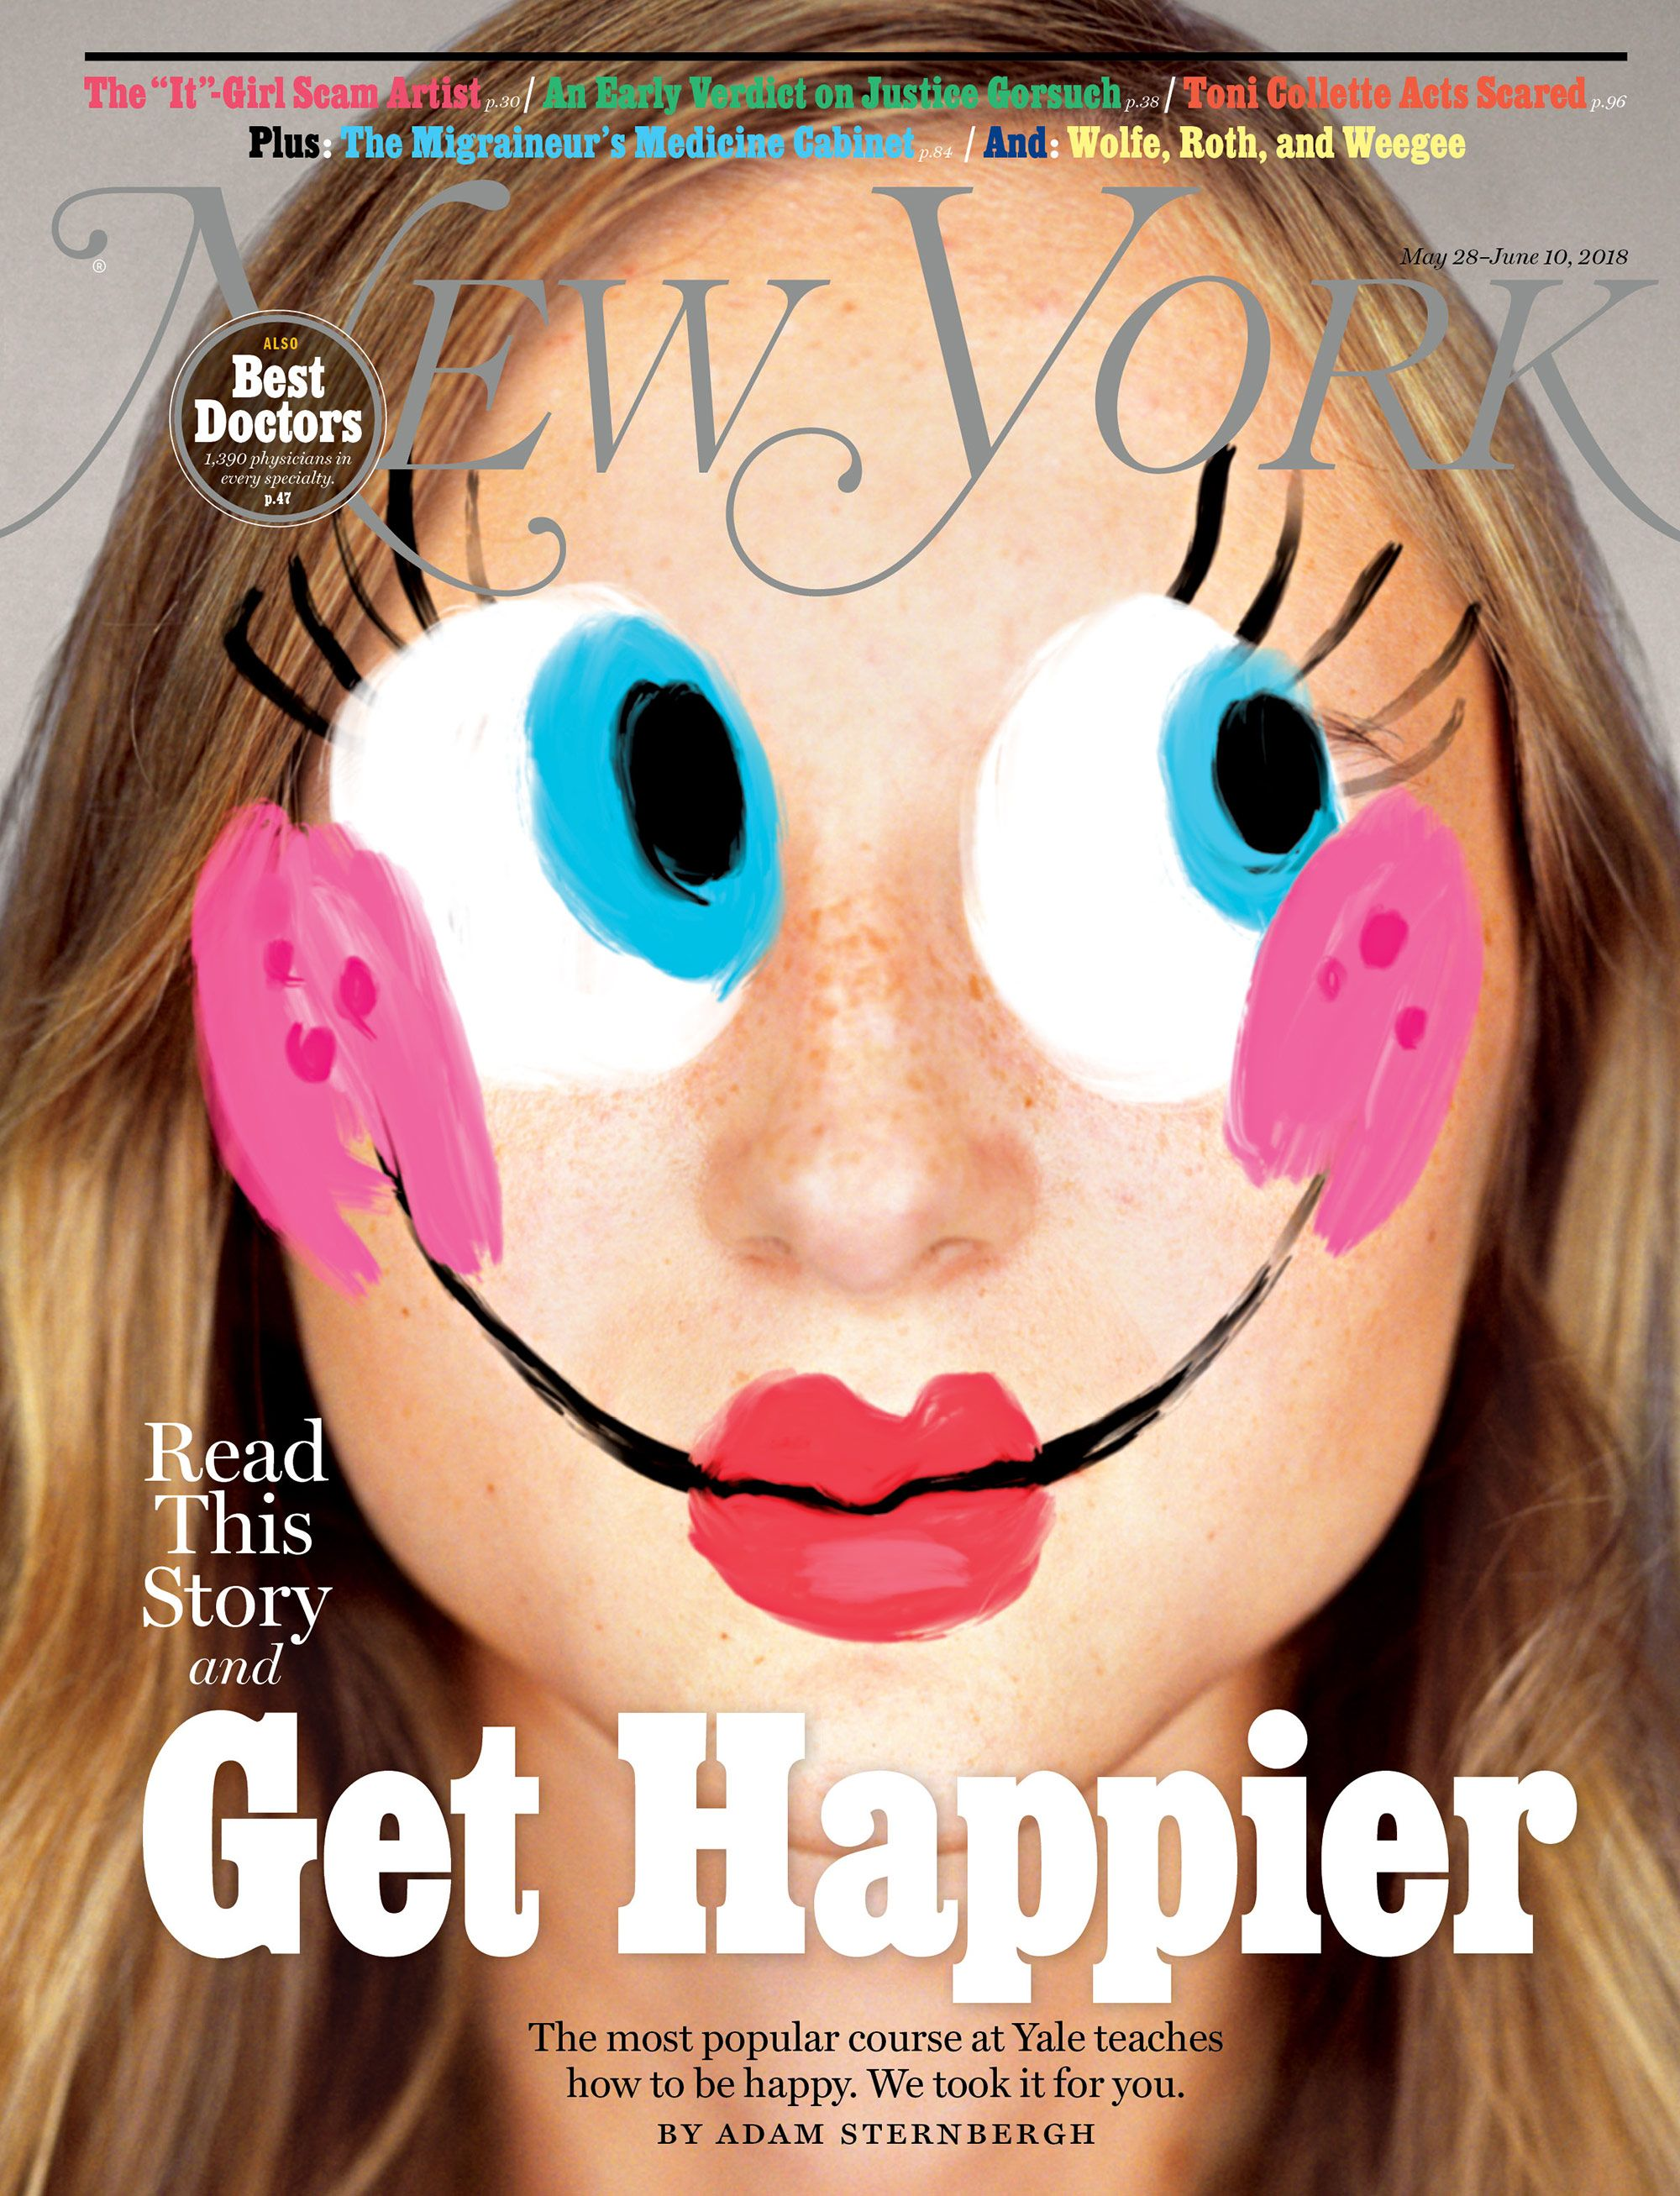 new york magazine subscription - official page